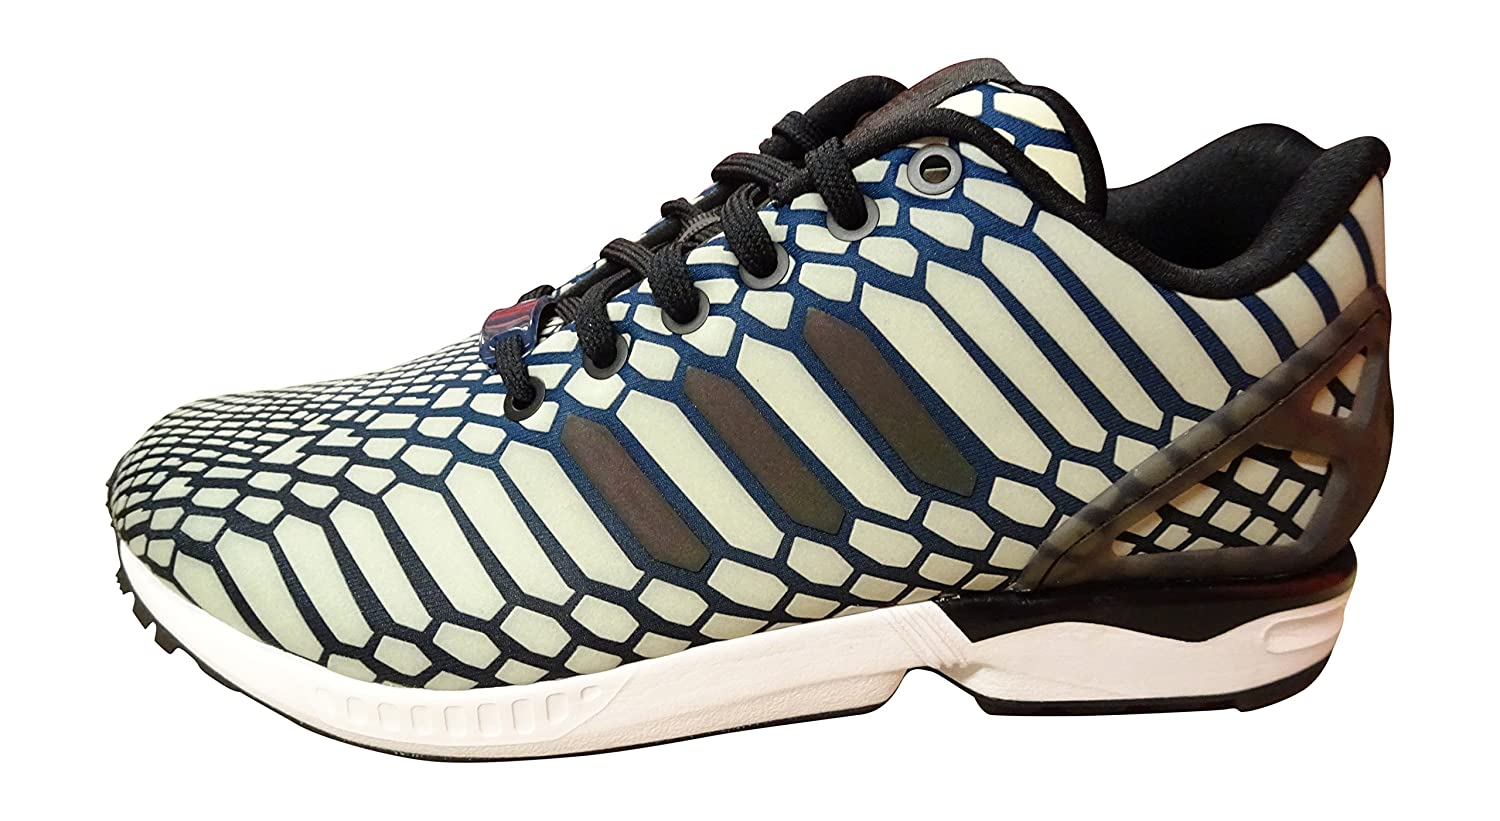 huge selection of de6fe 8c133 Adidas Originals ZX FLux Xeno Mens Running Trainers Sneakers Shoes   Amazon.co.uk  Shoes   Bags